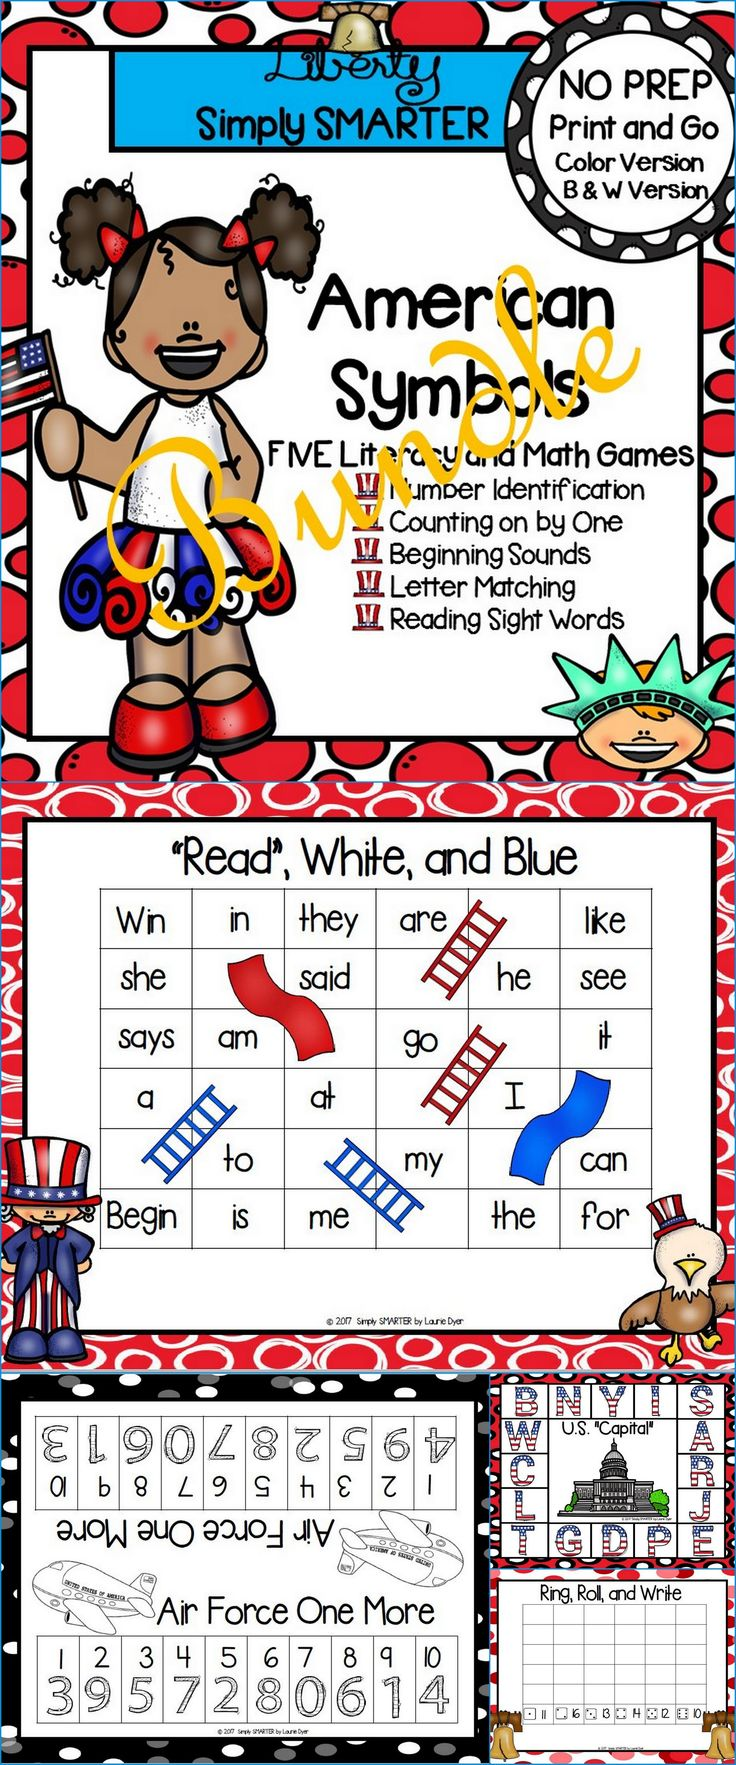 Are you looking for NO PREP literacy and math games for preschool, kindergarten, or first grade? Then download this bundle and go! Enjoy this phonics and math resource which is comprised of FIVE different AMERICAN SYMBOLS themed games complete with a color version and black and white version of each game. The games can be used for small group work, partner collaboration, or homework!